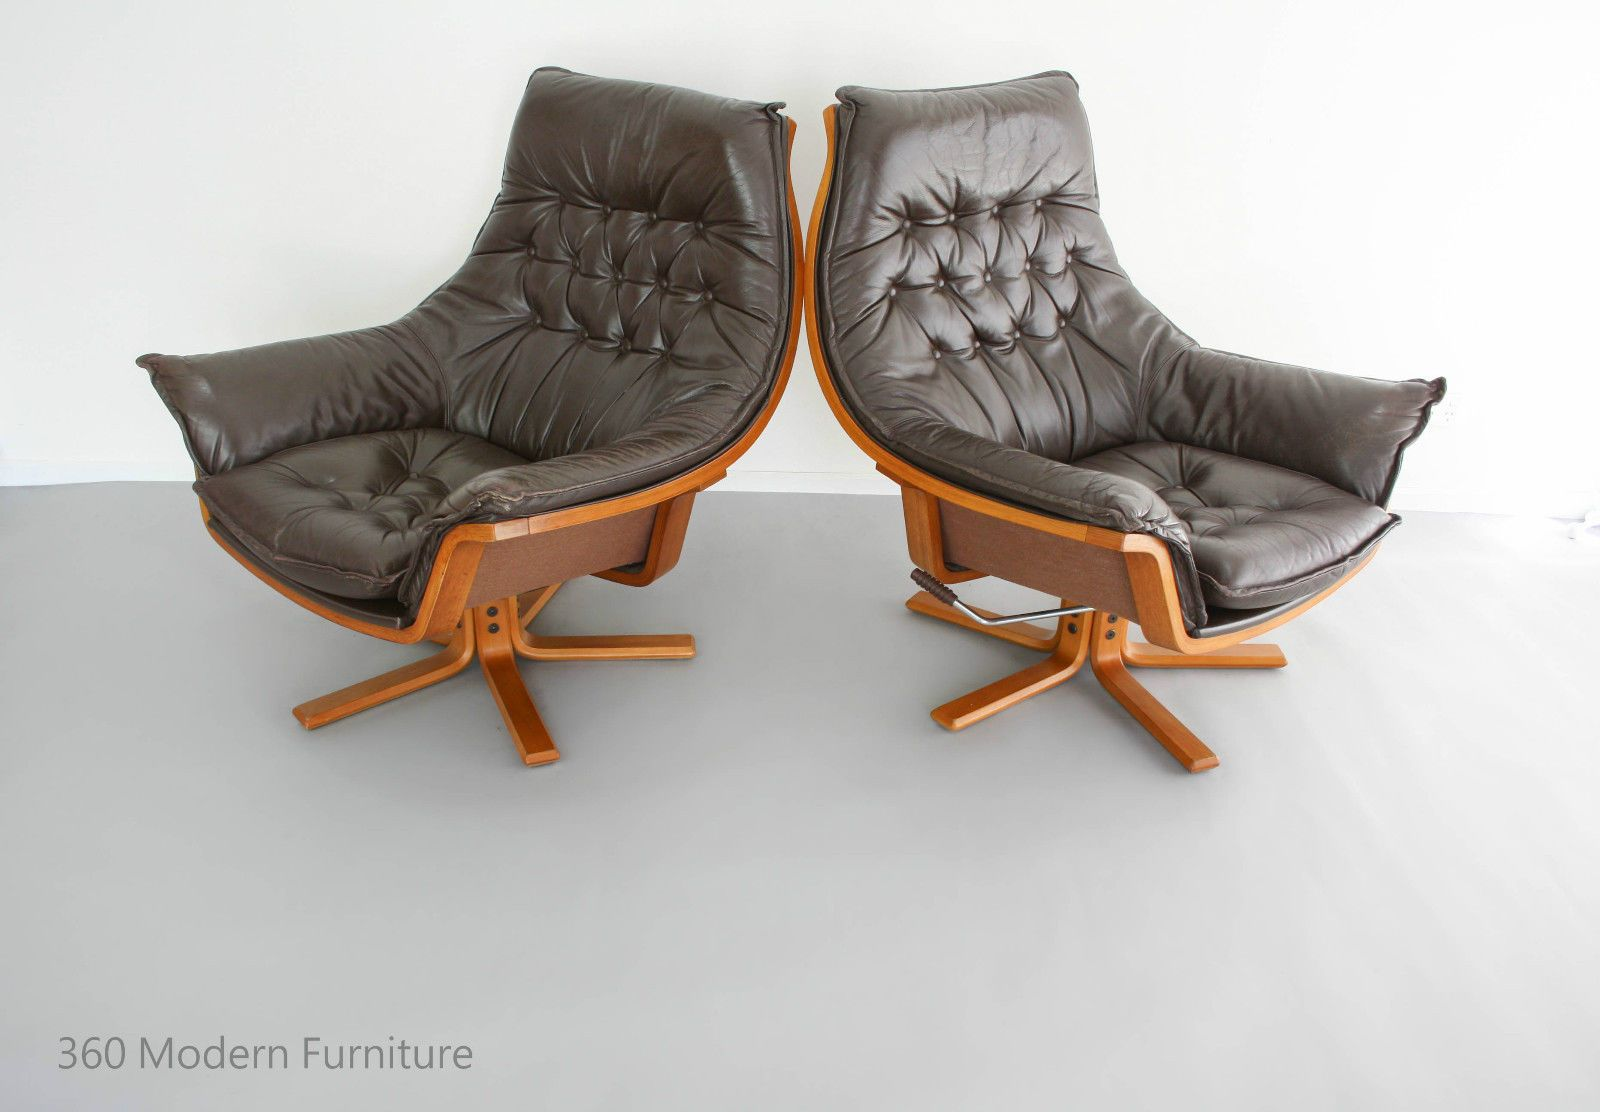 MID Century Armchairs X2 Danish Deluxe Leather Swivel Rocker Recliner Bentwood Retro Vintage Lounge Chair pair : century recliners - islam-shia.org